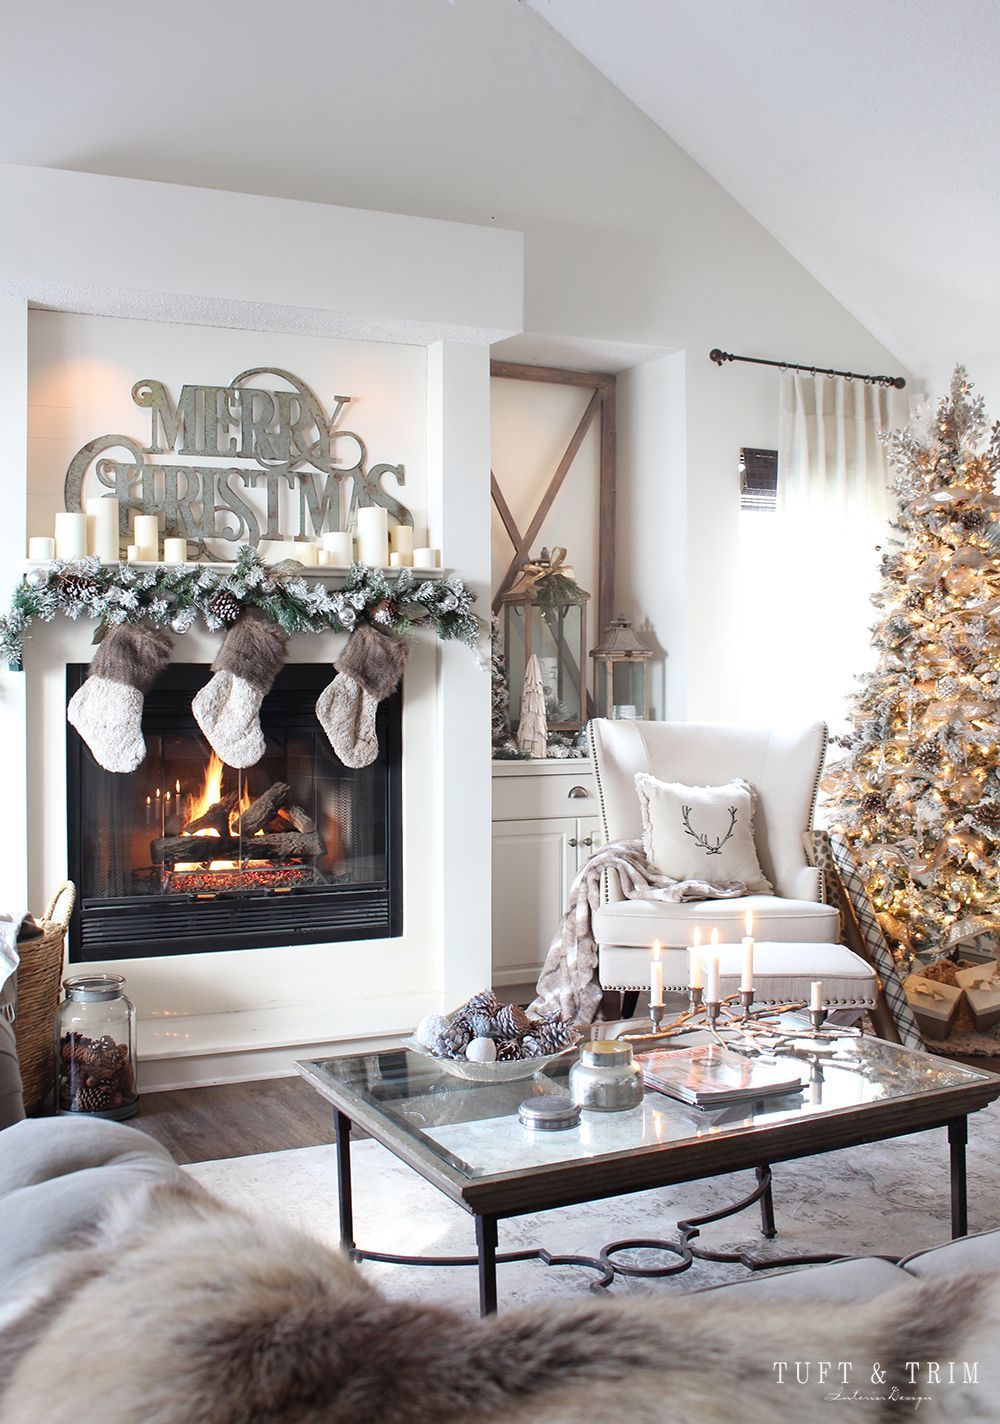 Elegant Christmas Home Tour: Rustic & Neutral Decor  Idee deco